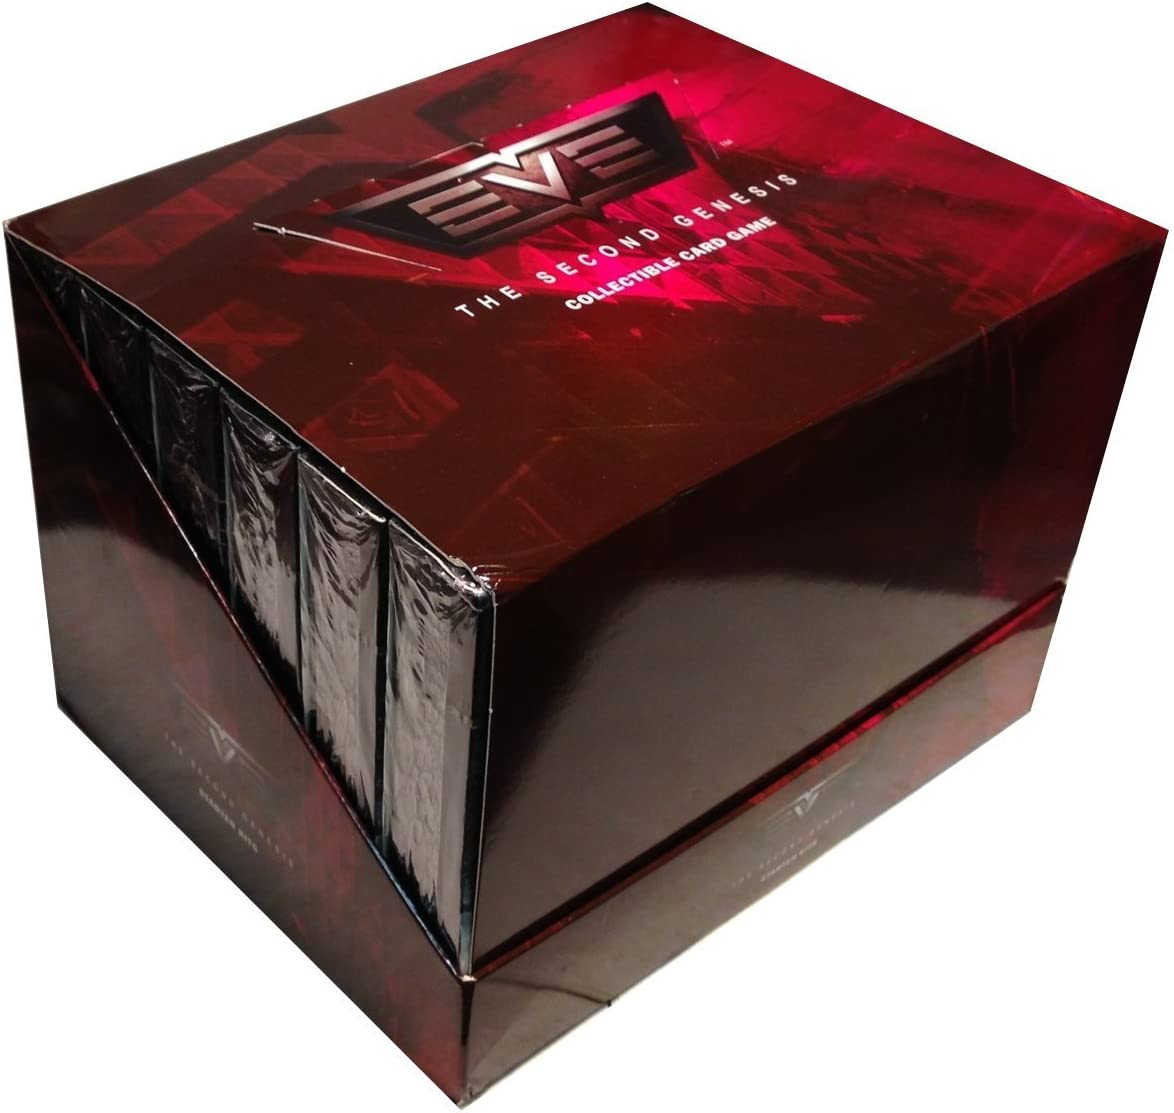 EVE the Second Genesis Starter Kit CCG Collectible Card Packs - 12 Pk Display - 6 Pks of Day of the Darkness - 6 Pks of the Great War